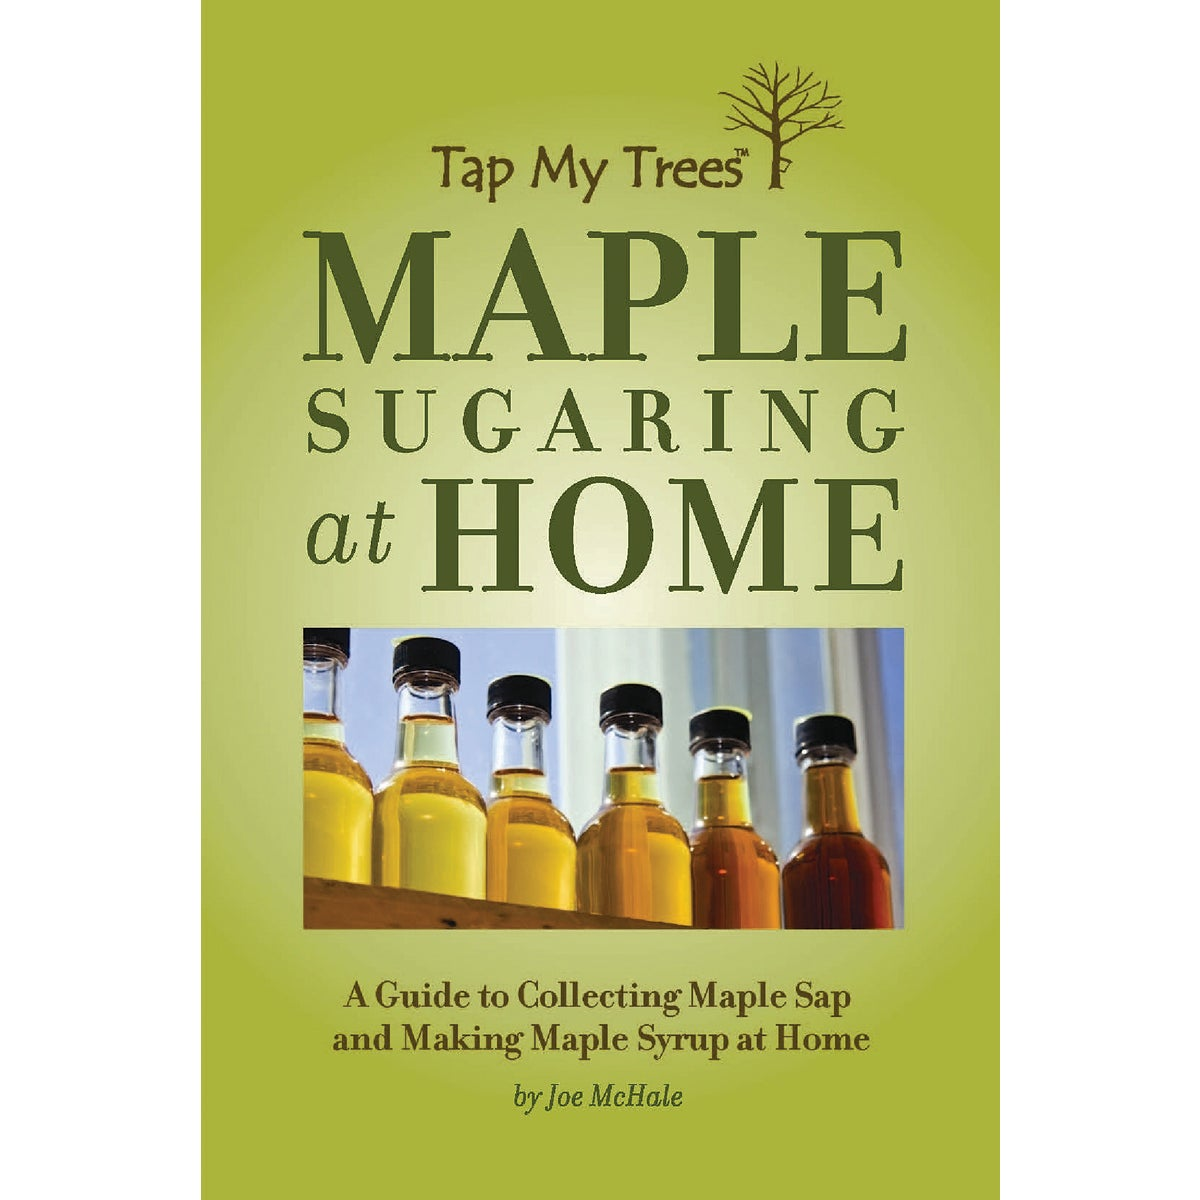 MAPLE SUGARING HOME BOOK